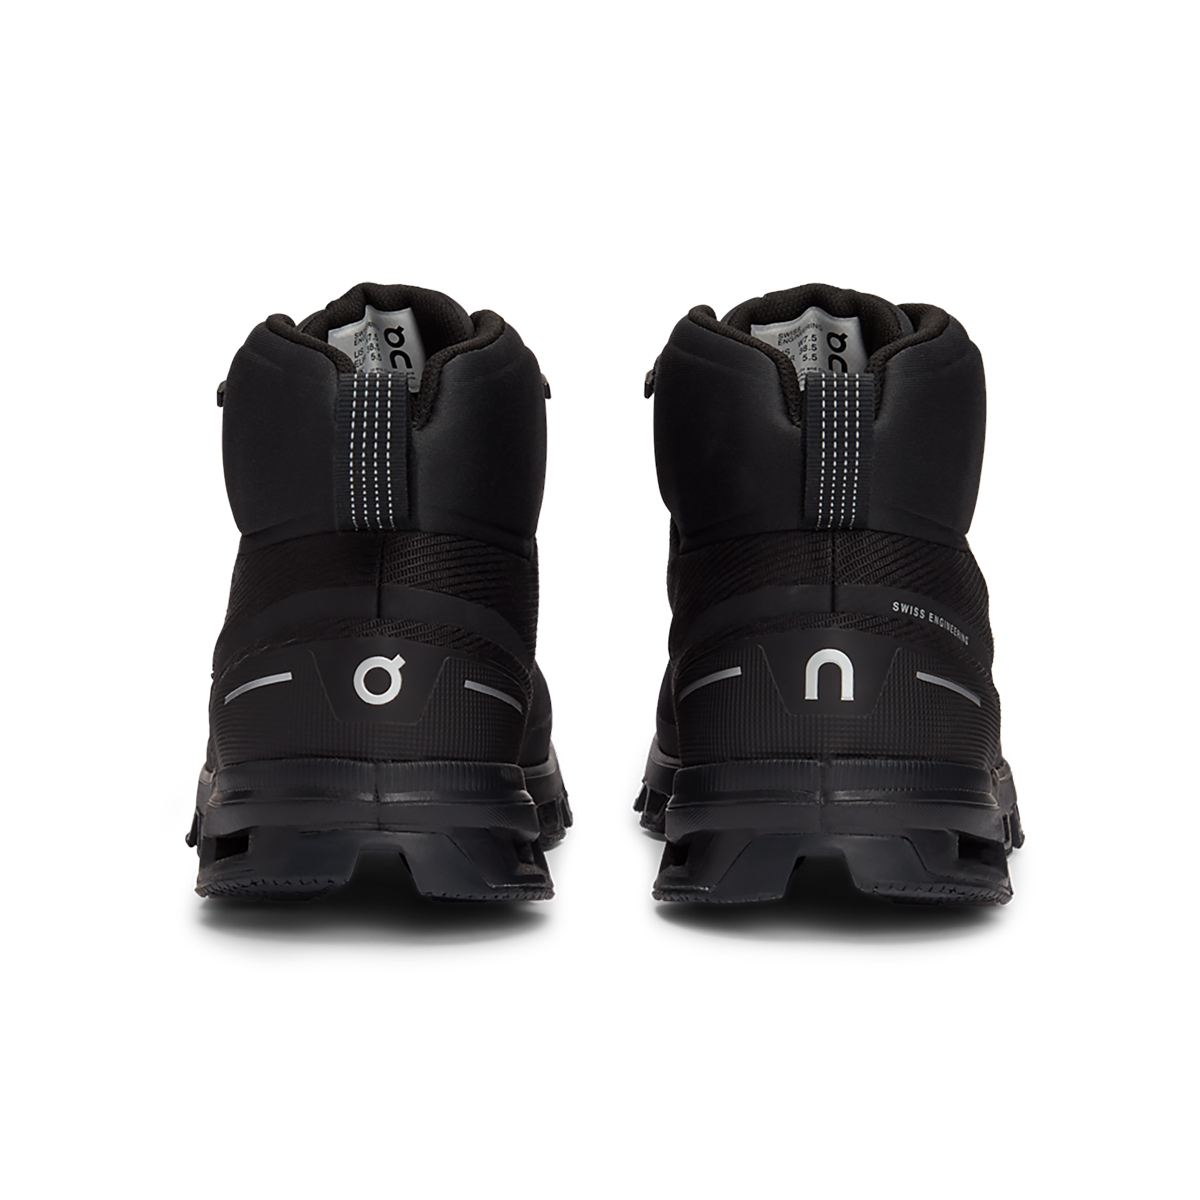 Women's On Cloudrock Waterproof Trail Running Shoe - Color: All Black - Size: 5 - Width: Wide, All Black, large, image 3